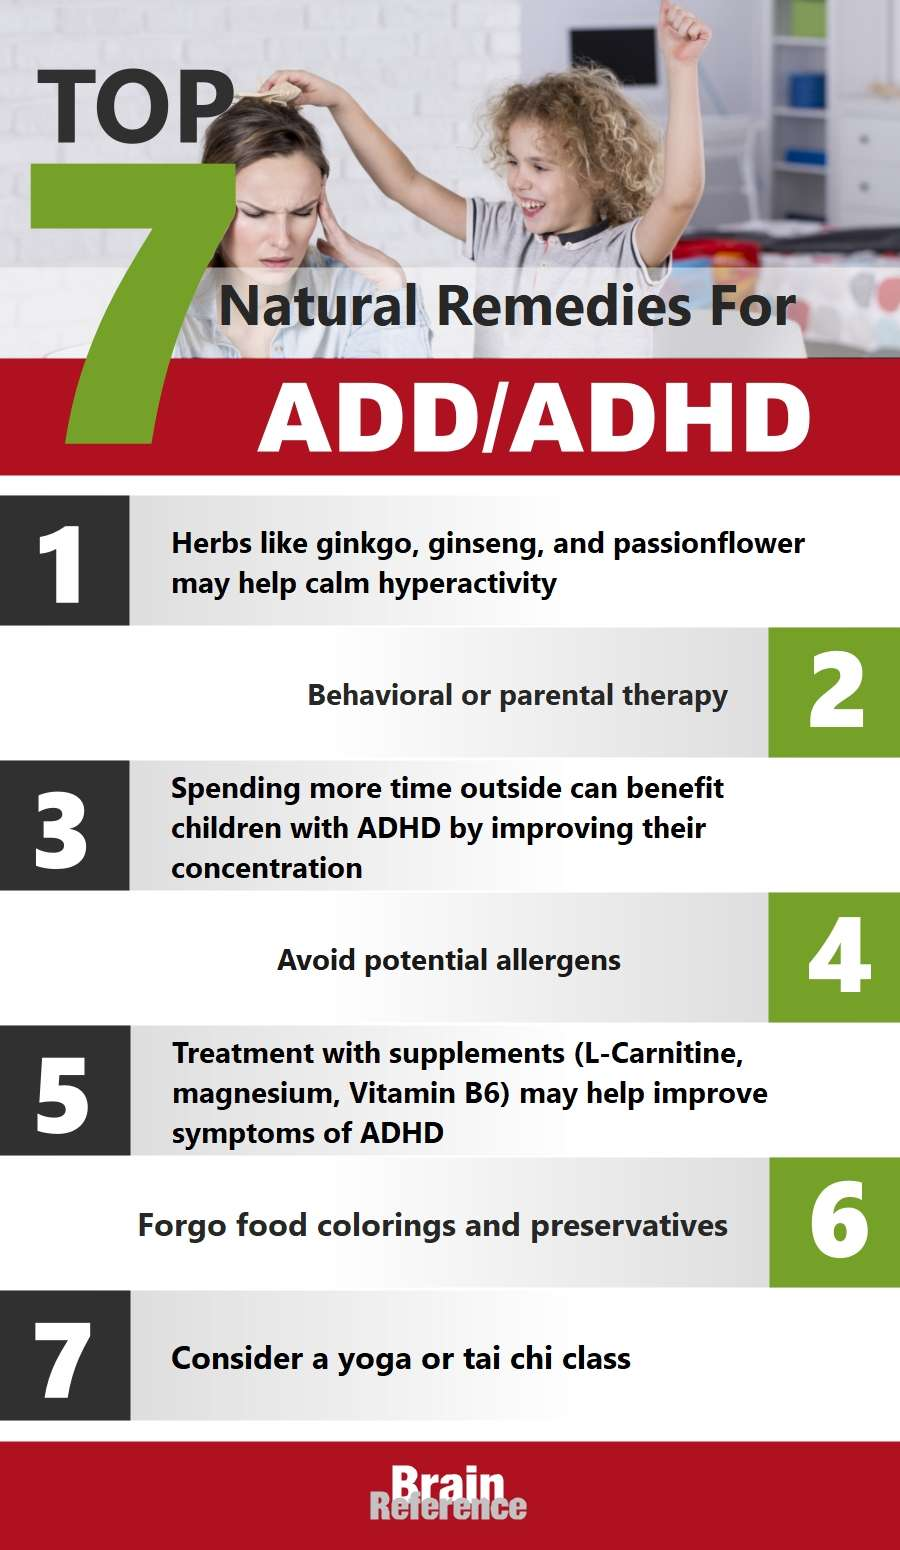 Attentive-Child-Source-Naturals-Good-Ingredients-For-ADHD